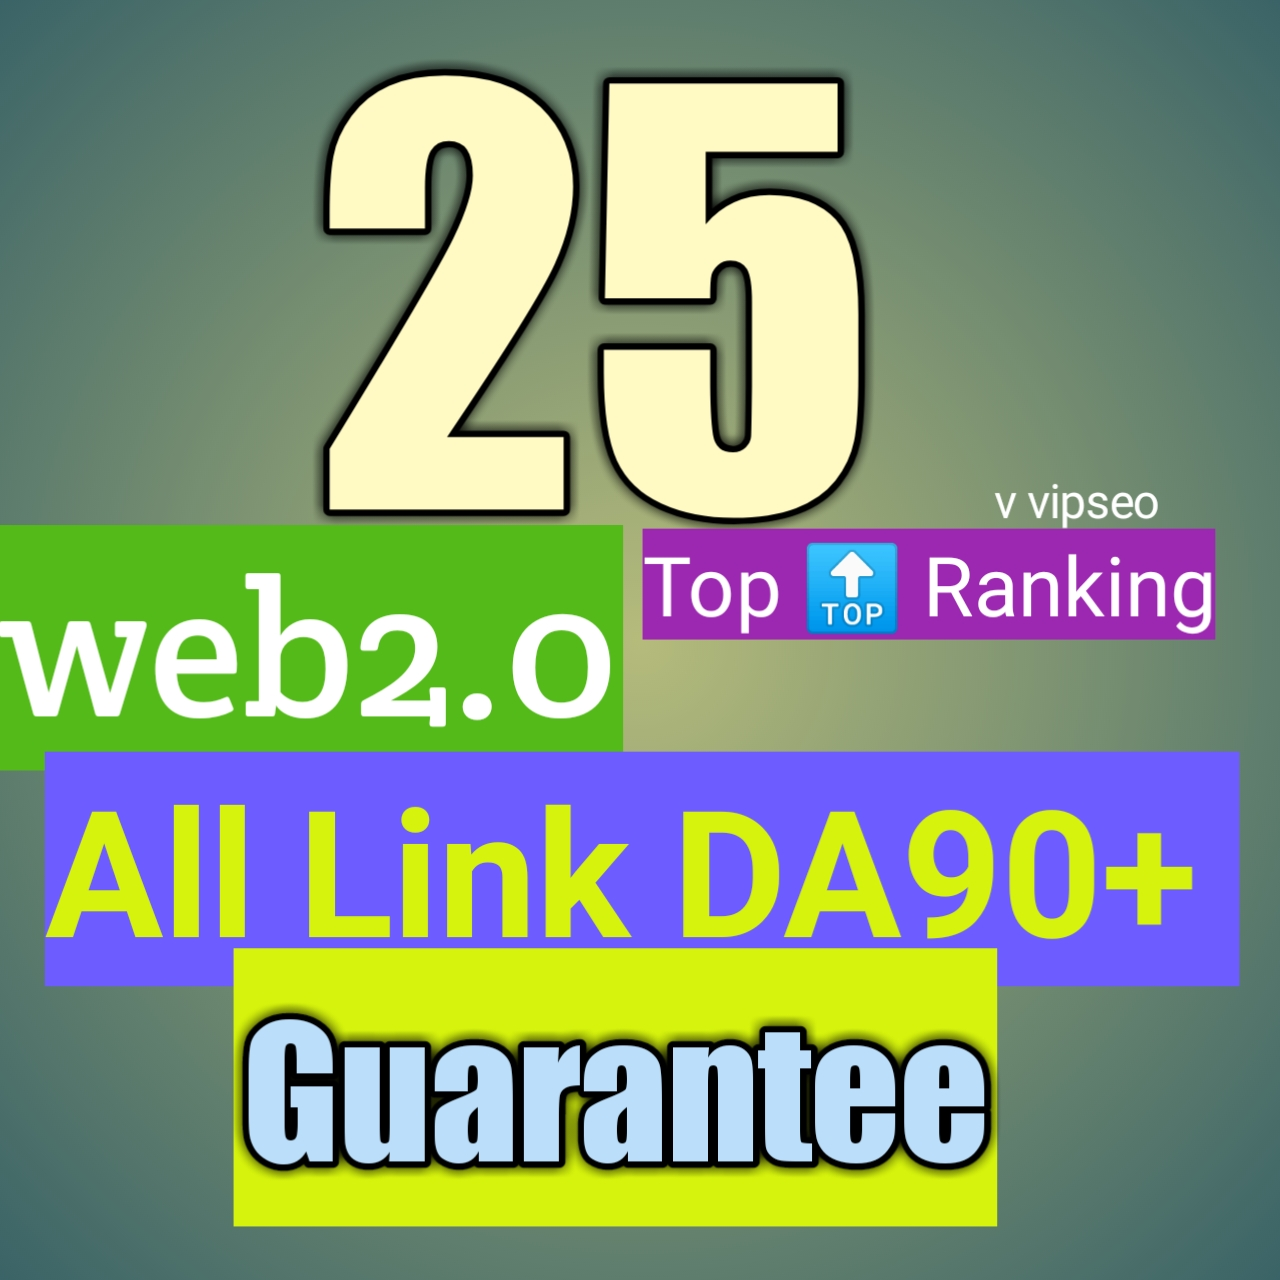 Web2.0 all DA80-90+ guarantee Dofollow 25 backlinks white hat link building service for top ranking